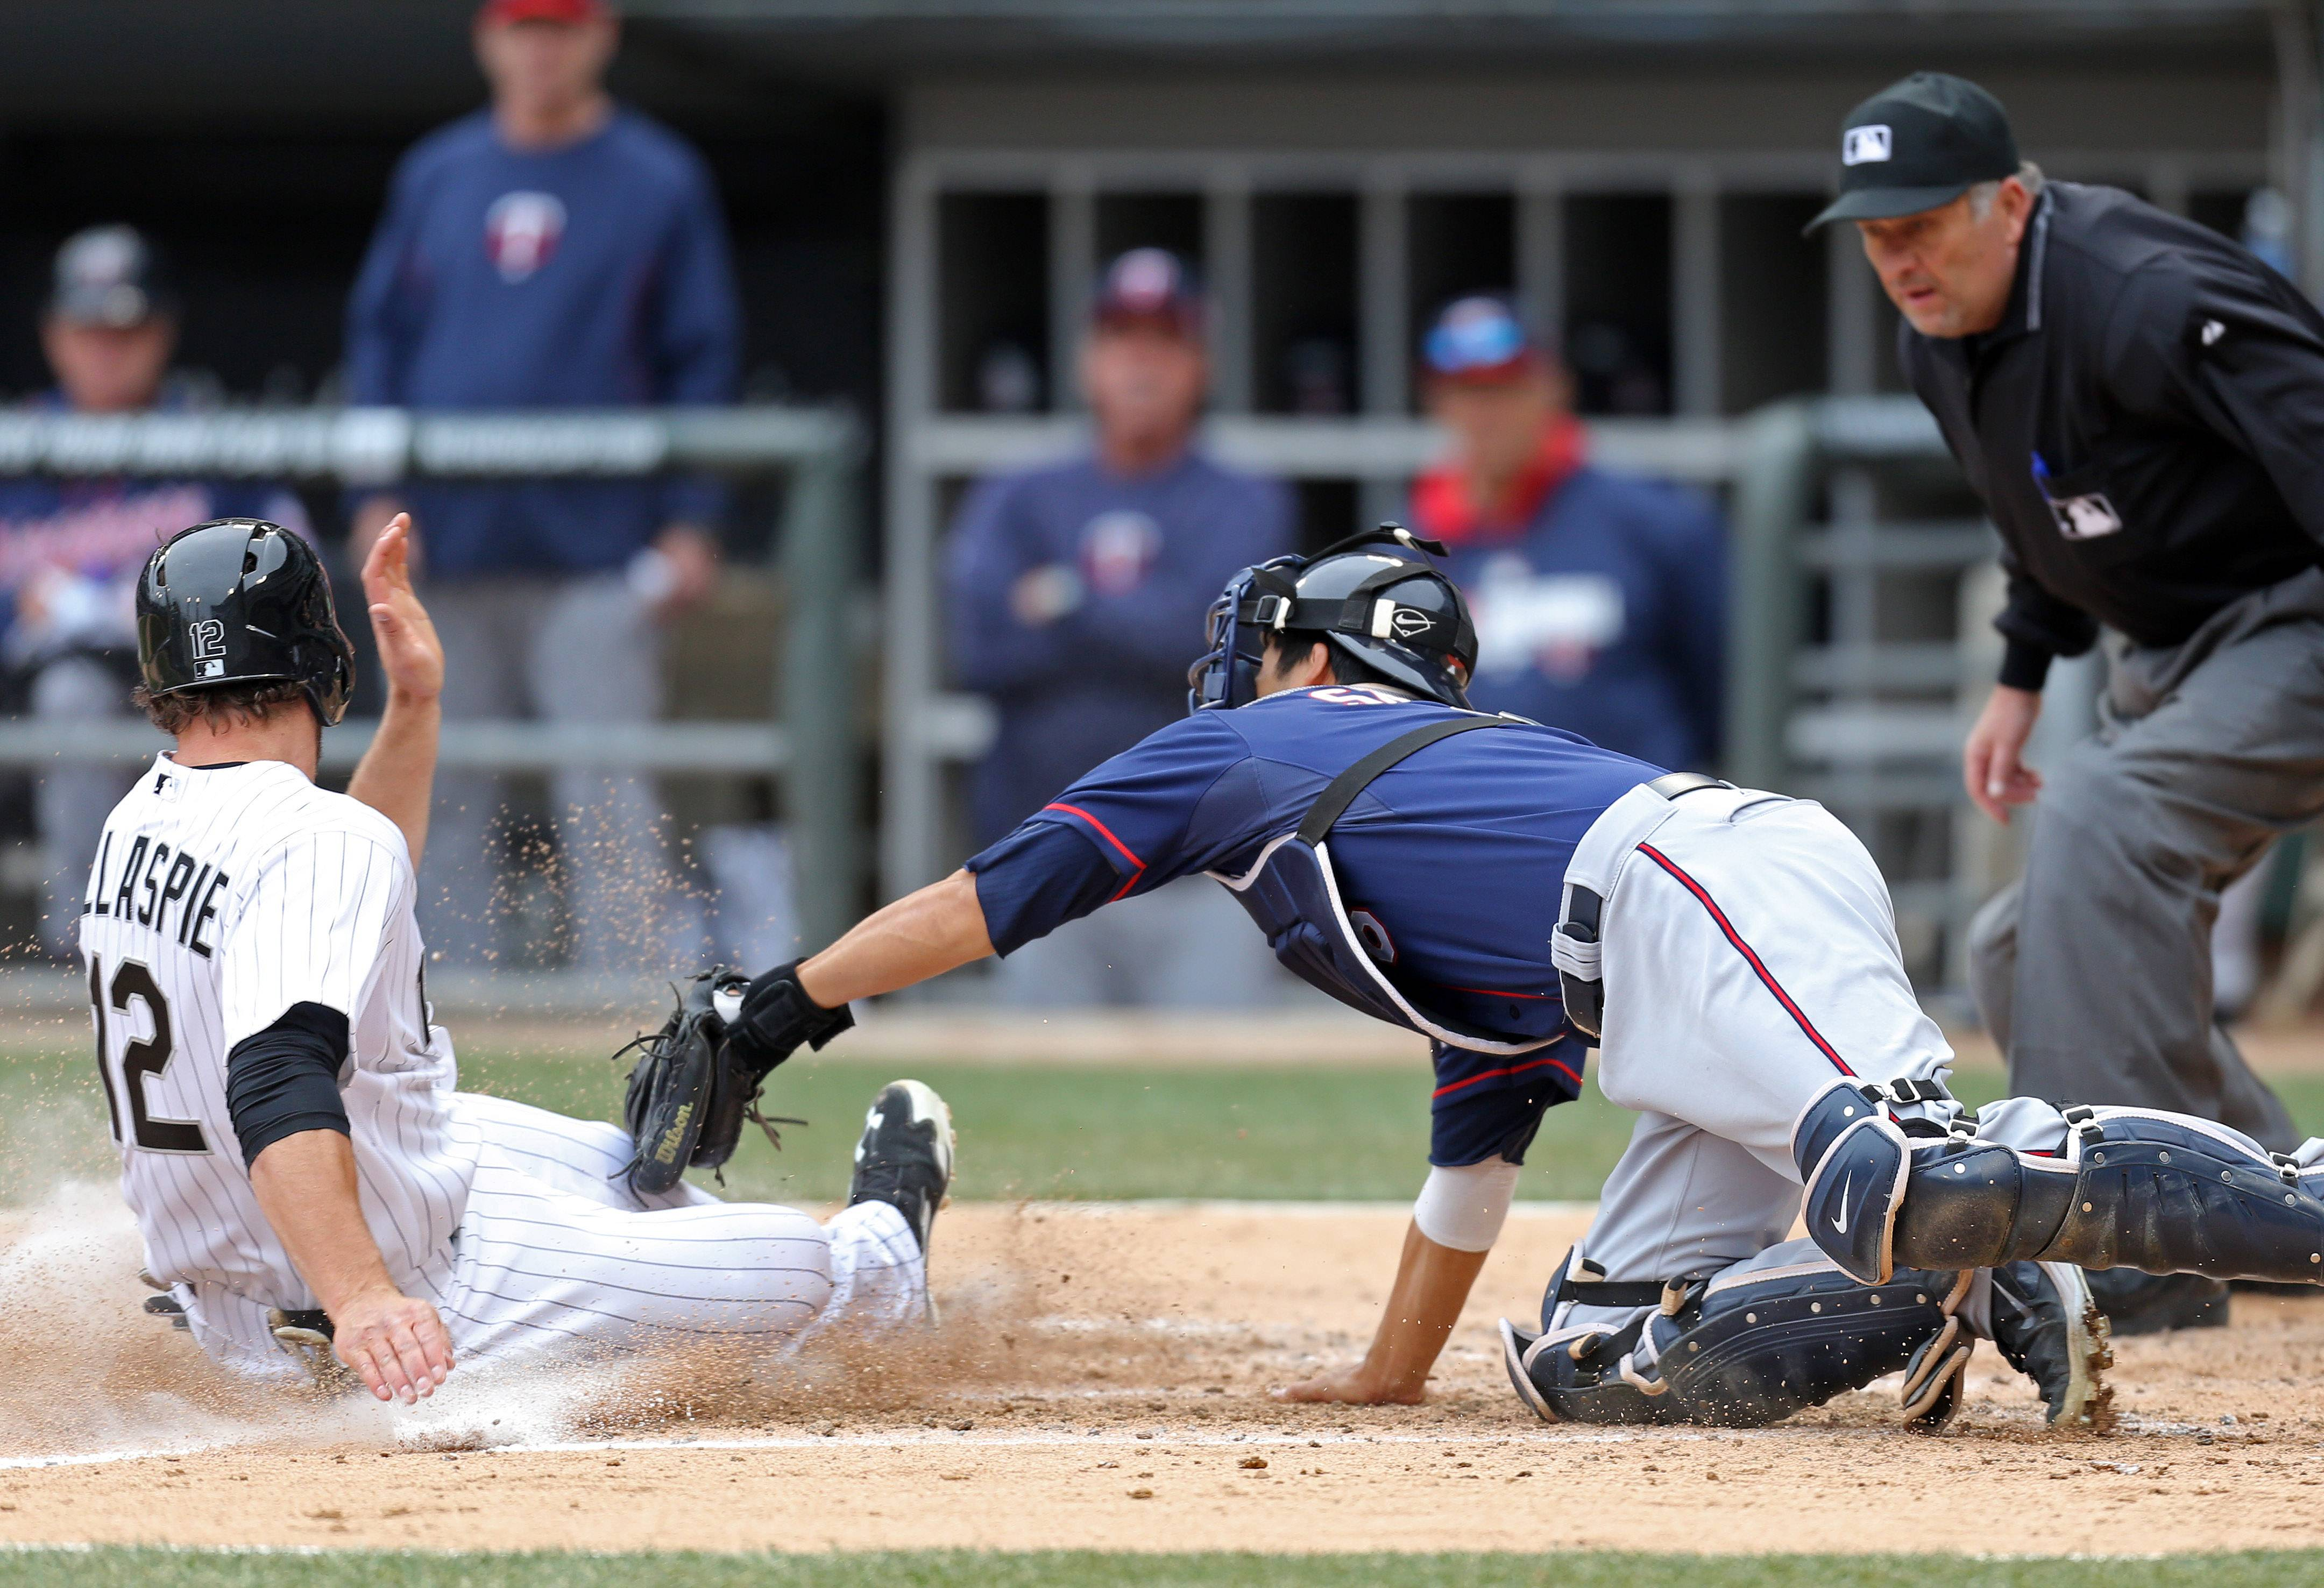 White Sox third baseman Conor Gillaspie scores on a play at home during Monday's home opener against the Minnesota Twins at U.S. Cellular Field.